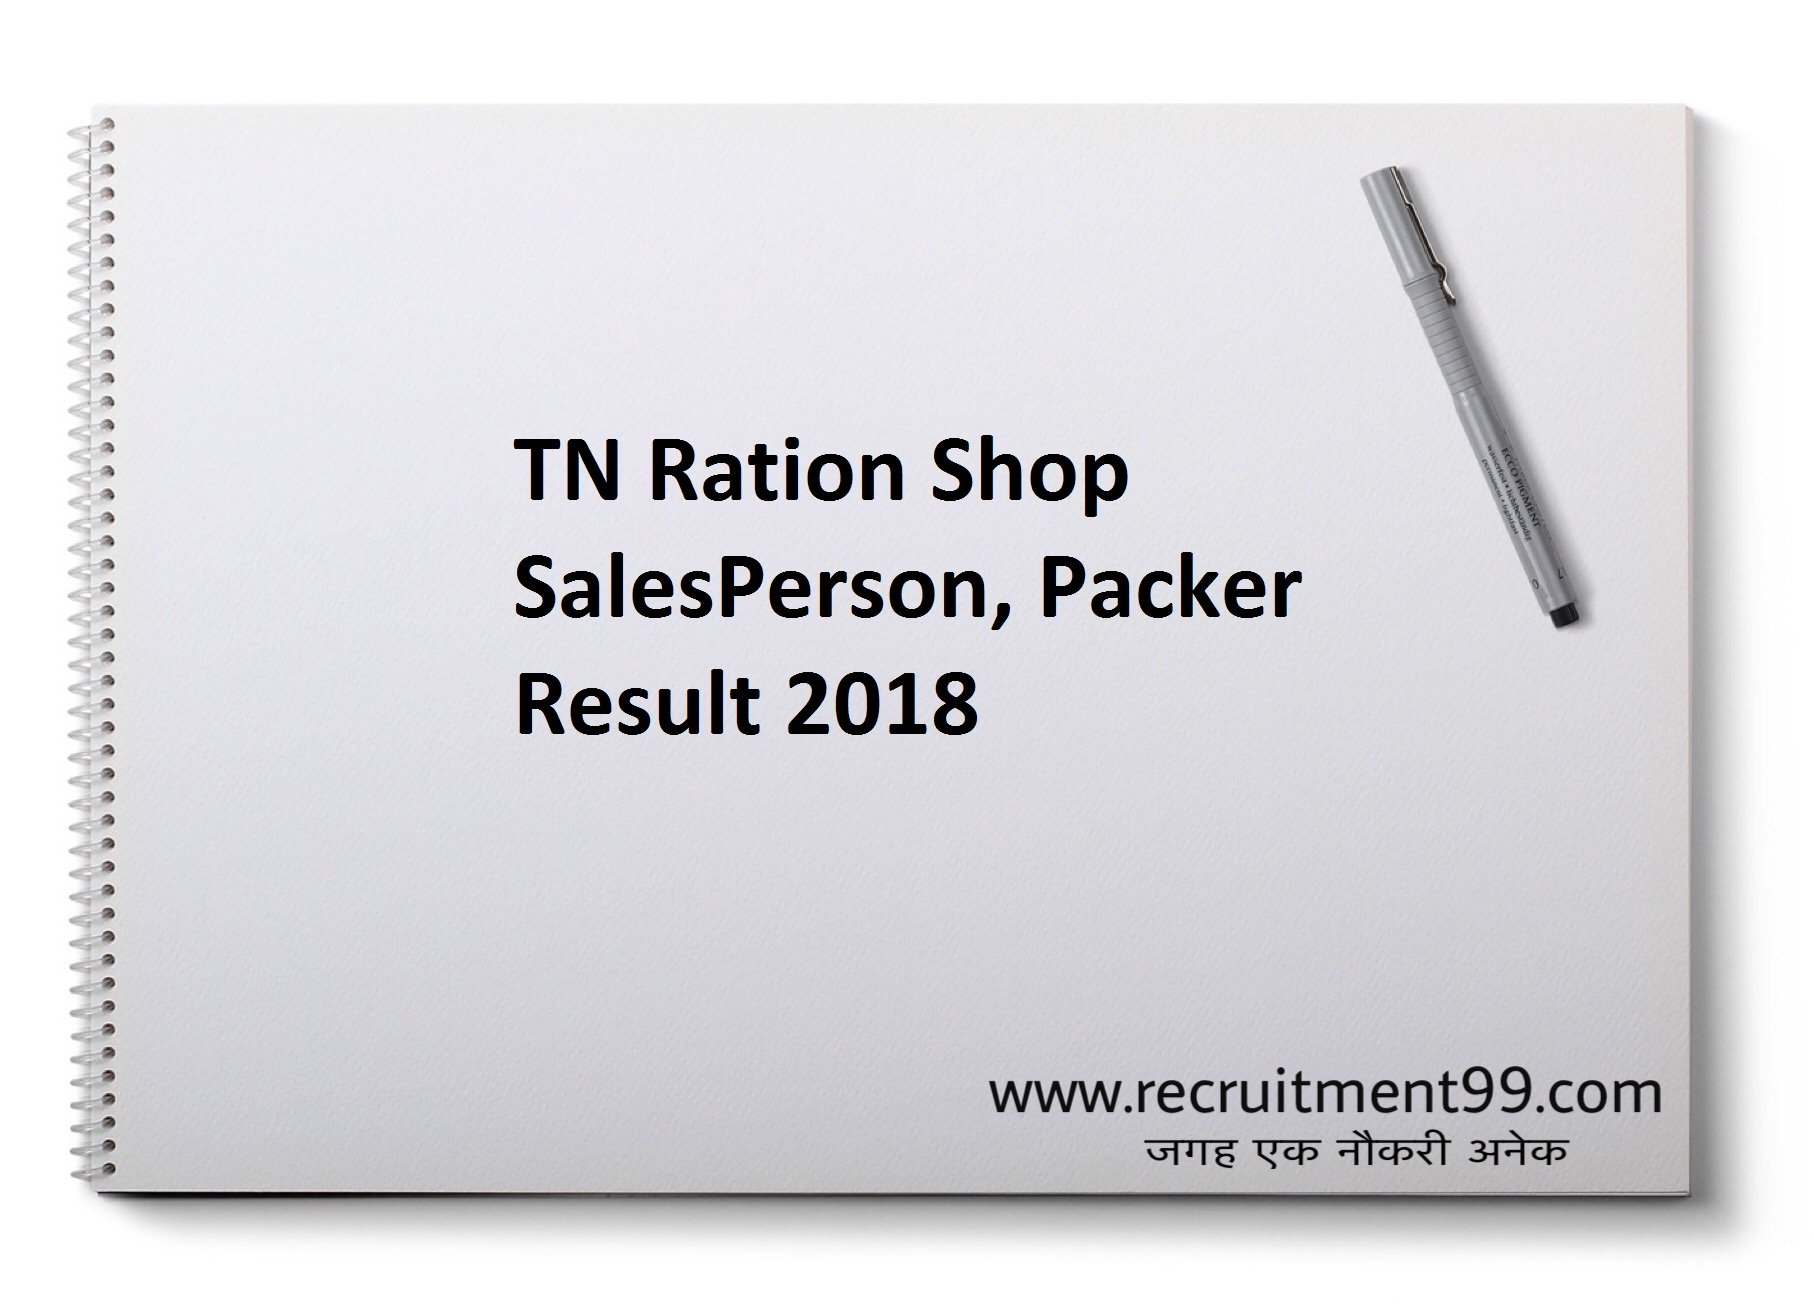 TN Ration Shop Sales Person, Packer Recruitment Admit Card Result 2018